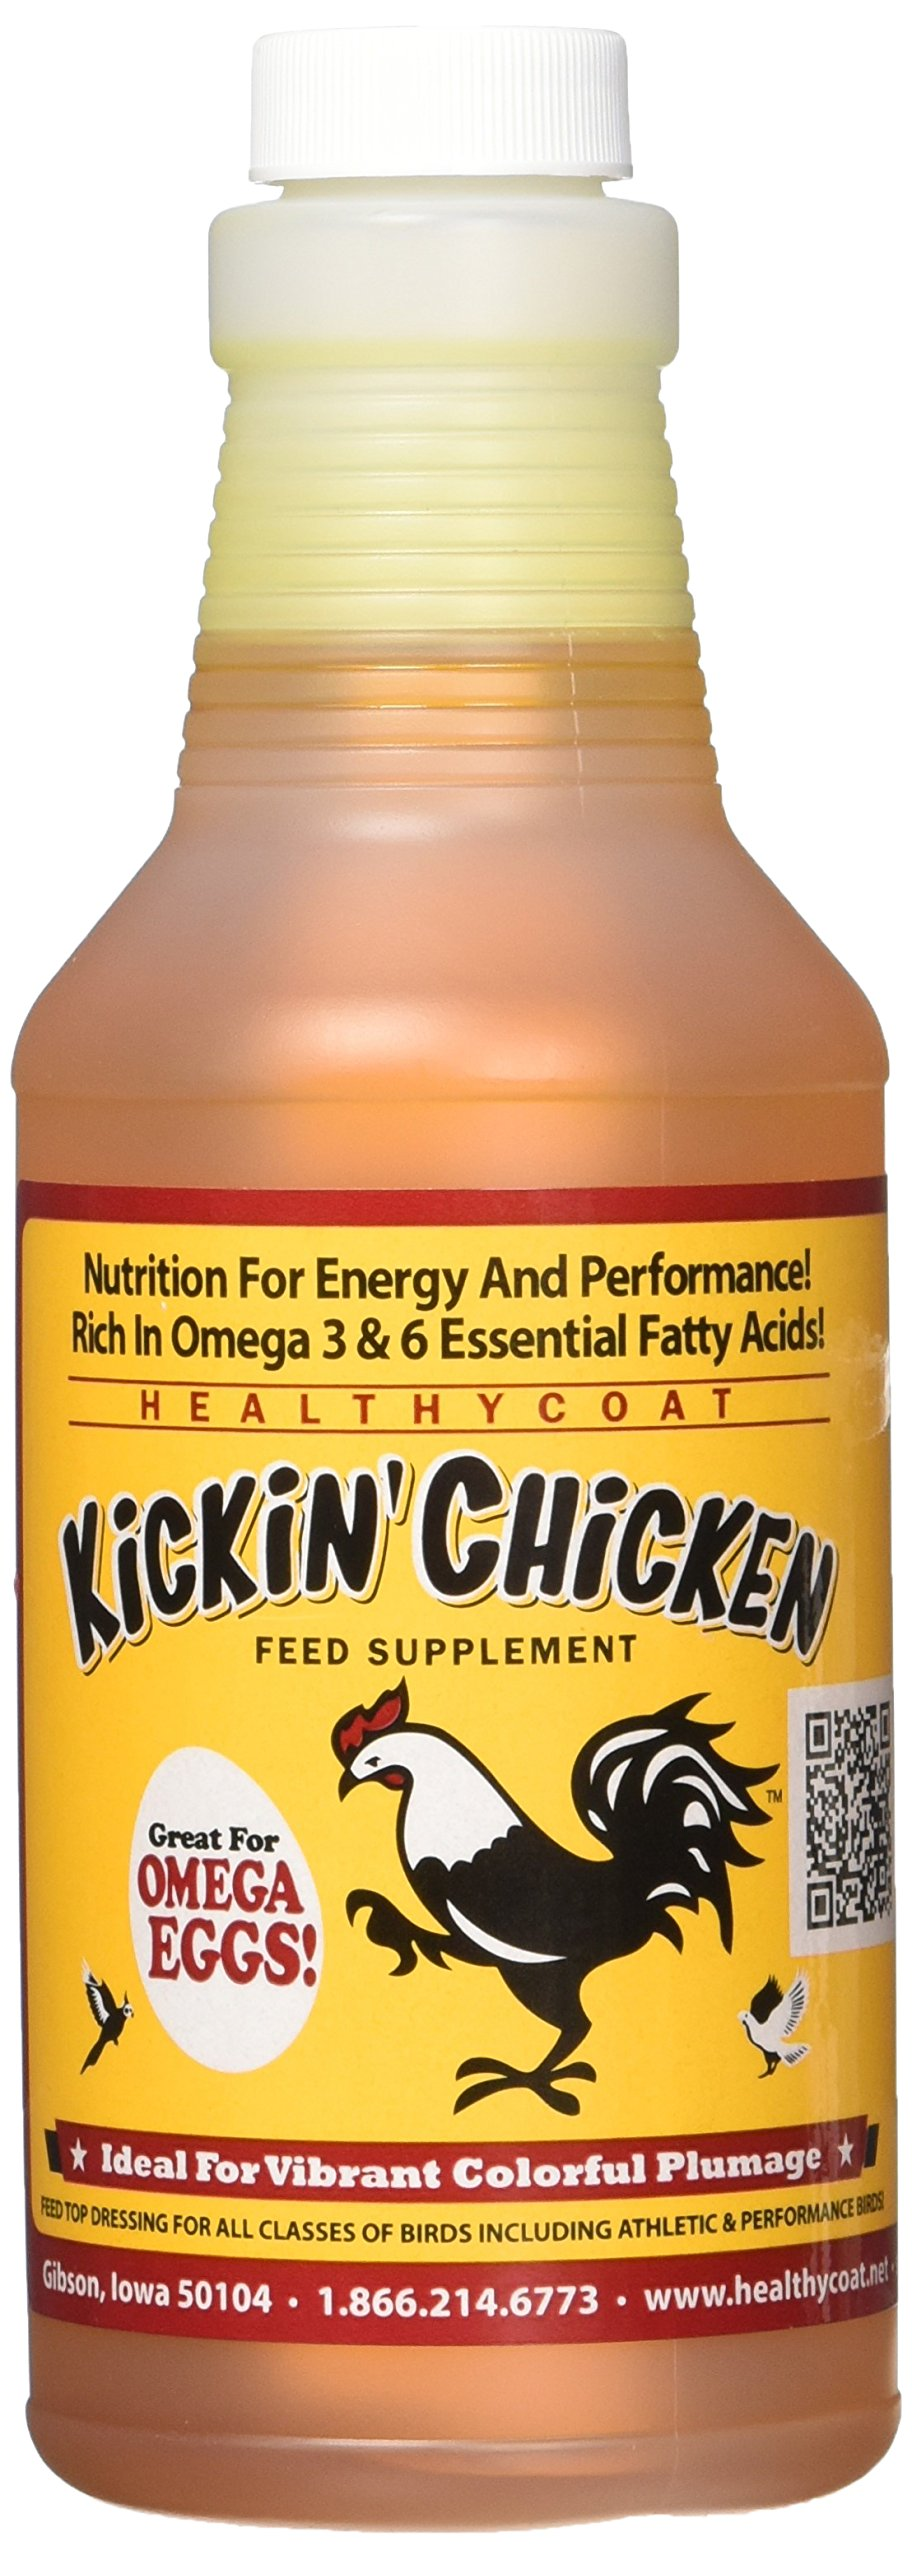 HealthyCoat Kickin Chicken: Pint - for Better Plumage, Eggs, and Attitude.